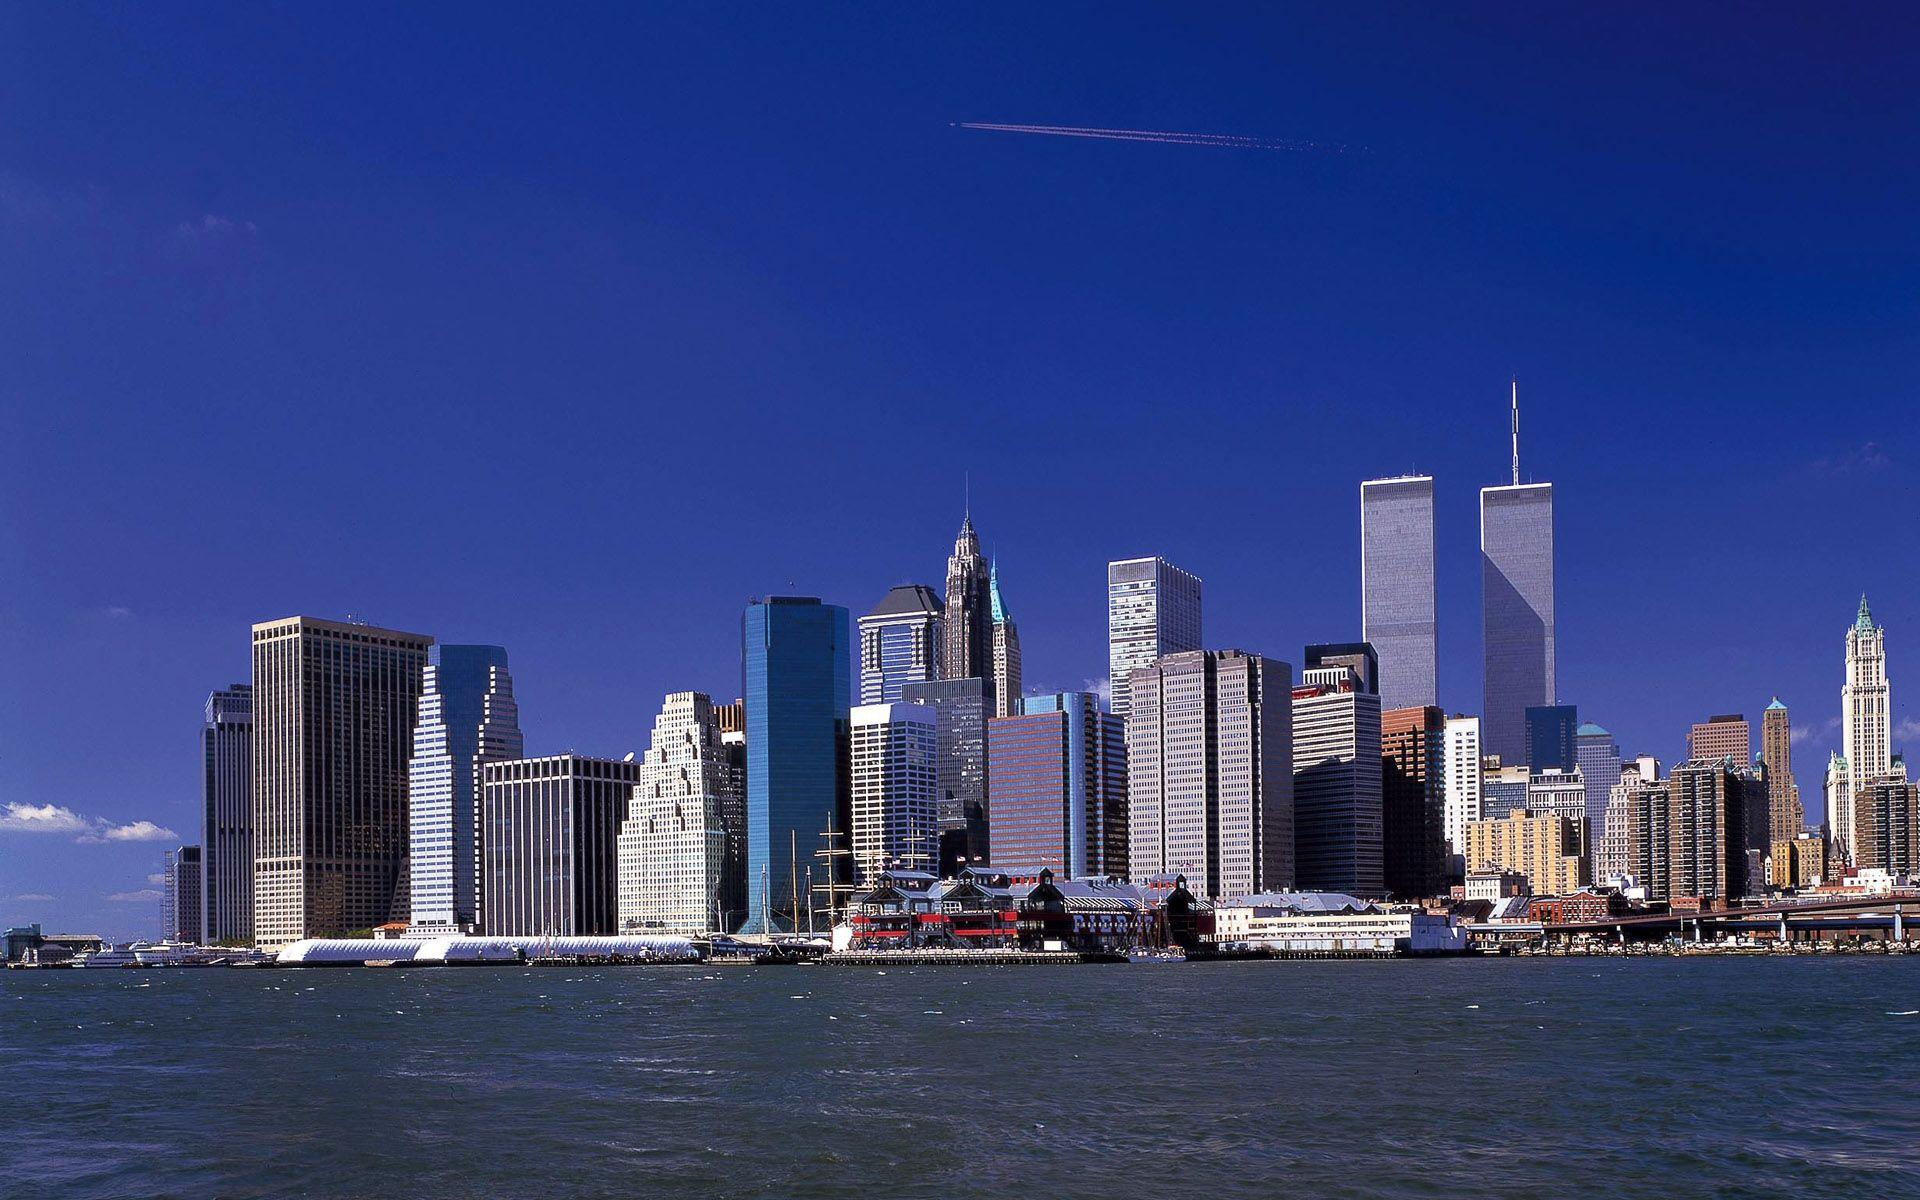 City View / New York / USA wallpapers and image